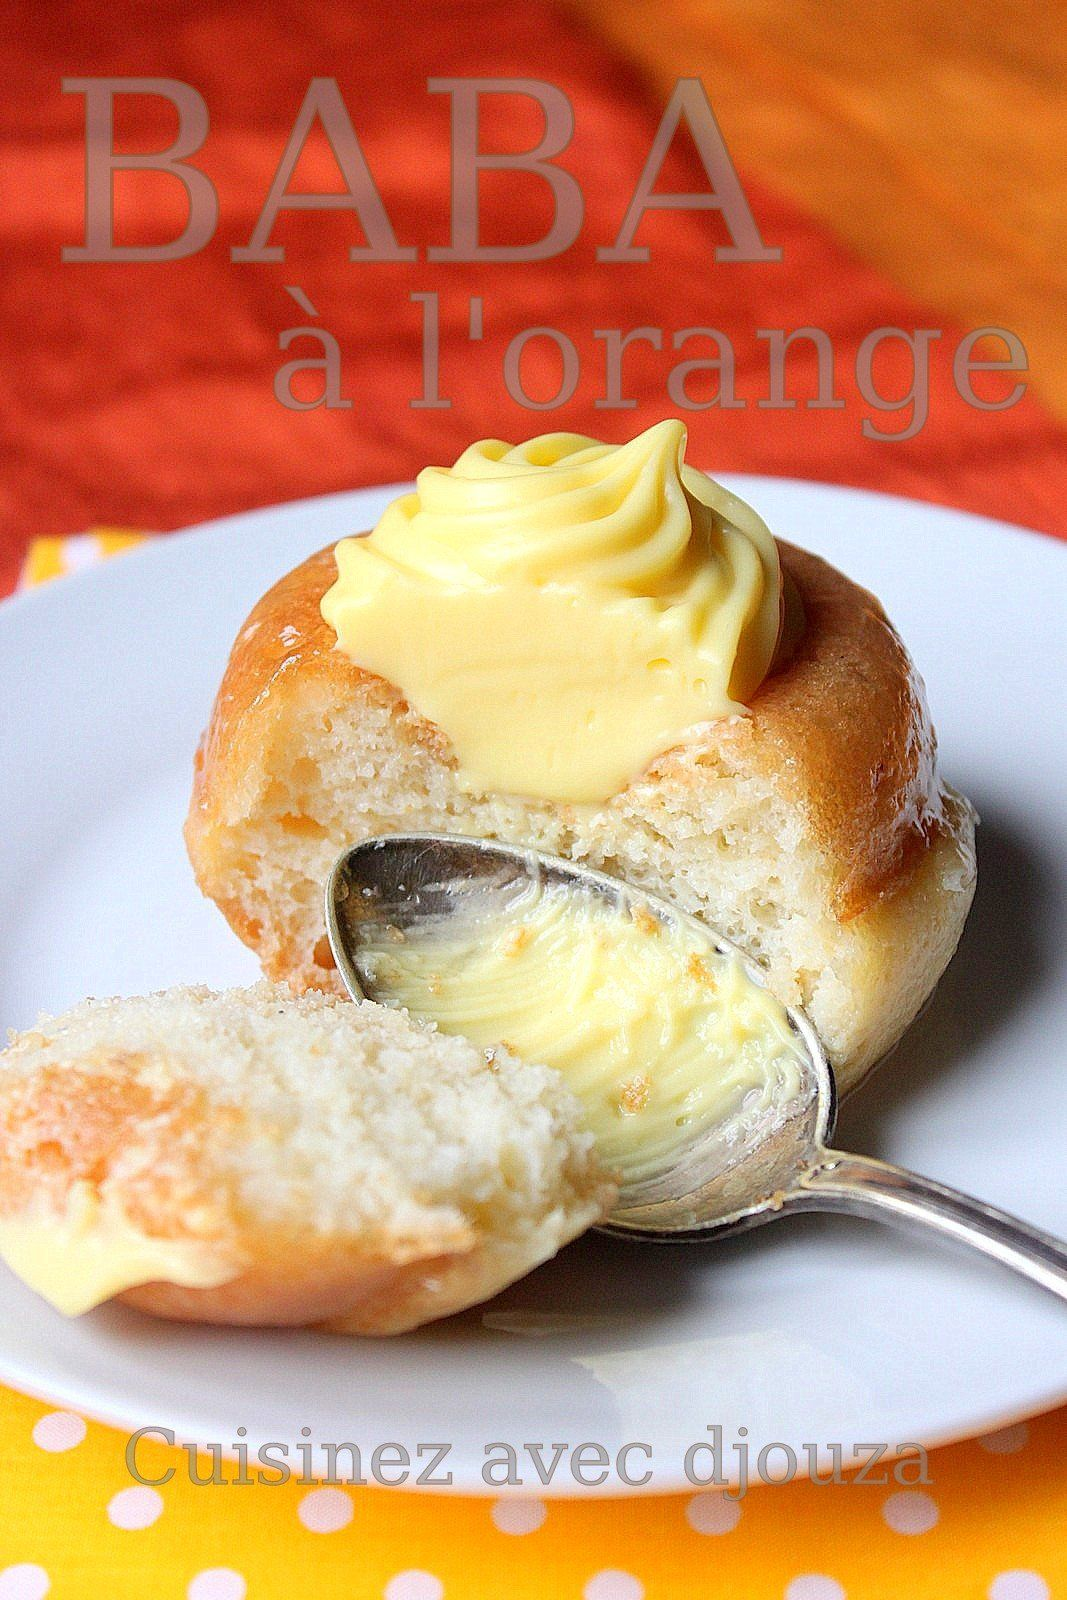 Baba au rhum ou mini savarin à l'orange sans alcool